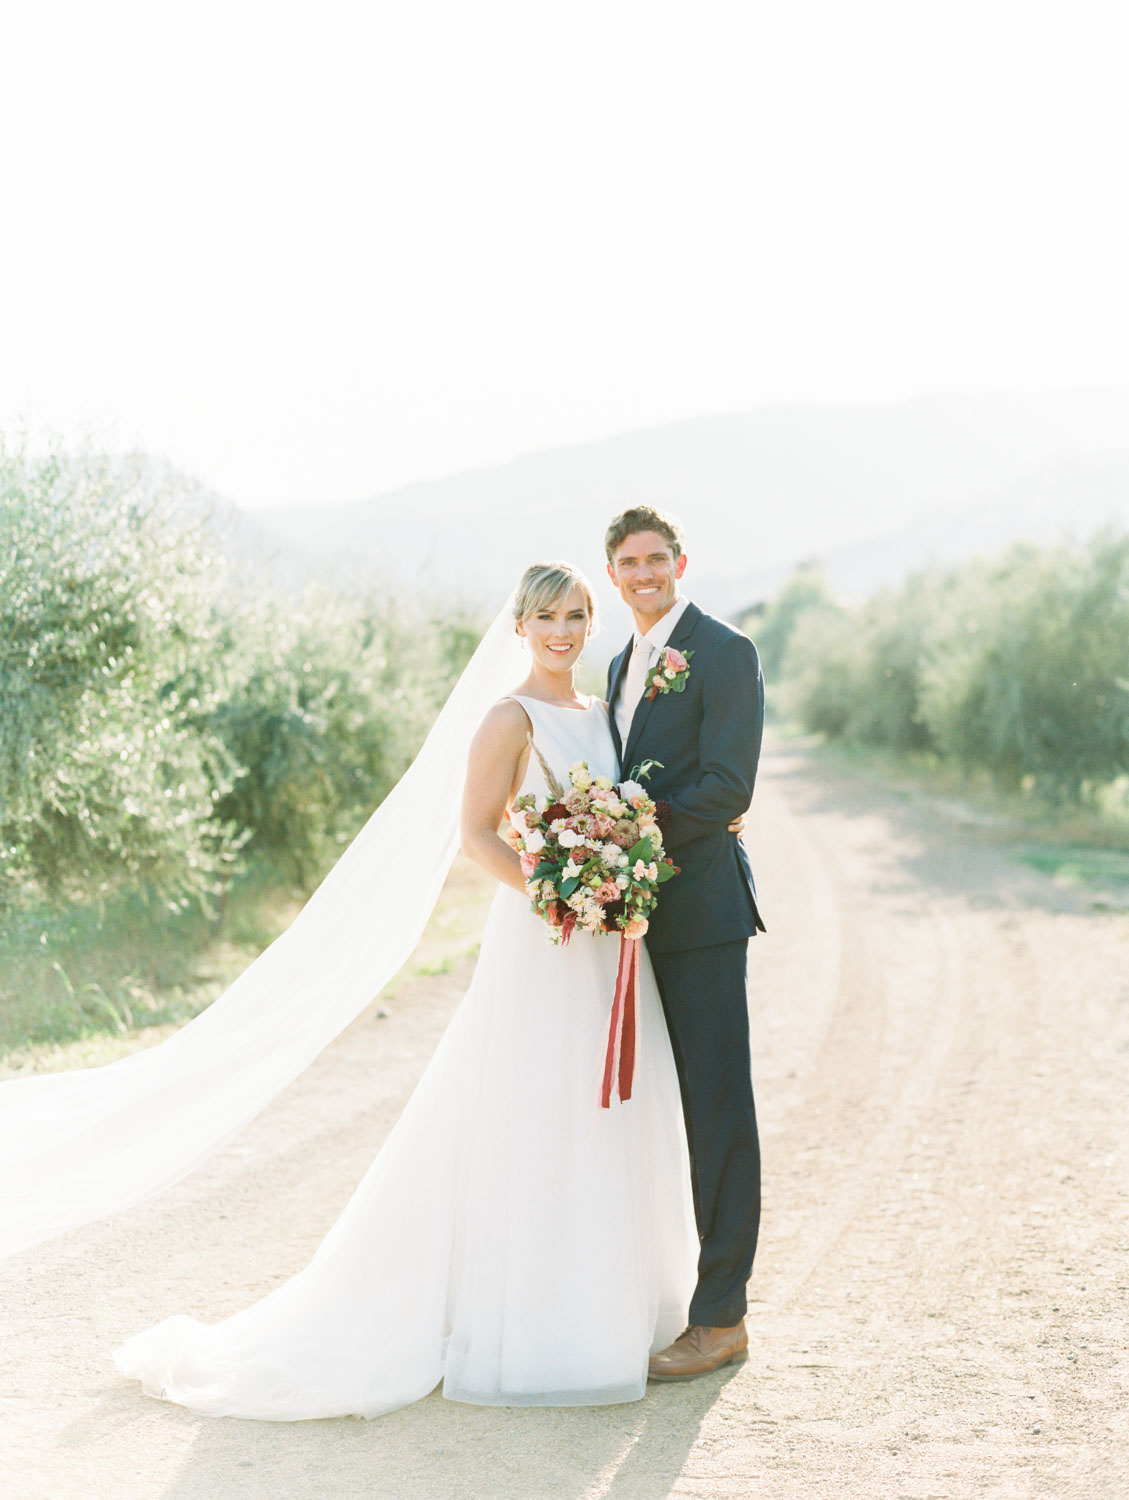 Groom and bride portrait with ethereal and dreamy light. Bride holding a colorful bouquet with ribbons by film photographer Cavin Elizabeth Photography